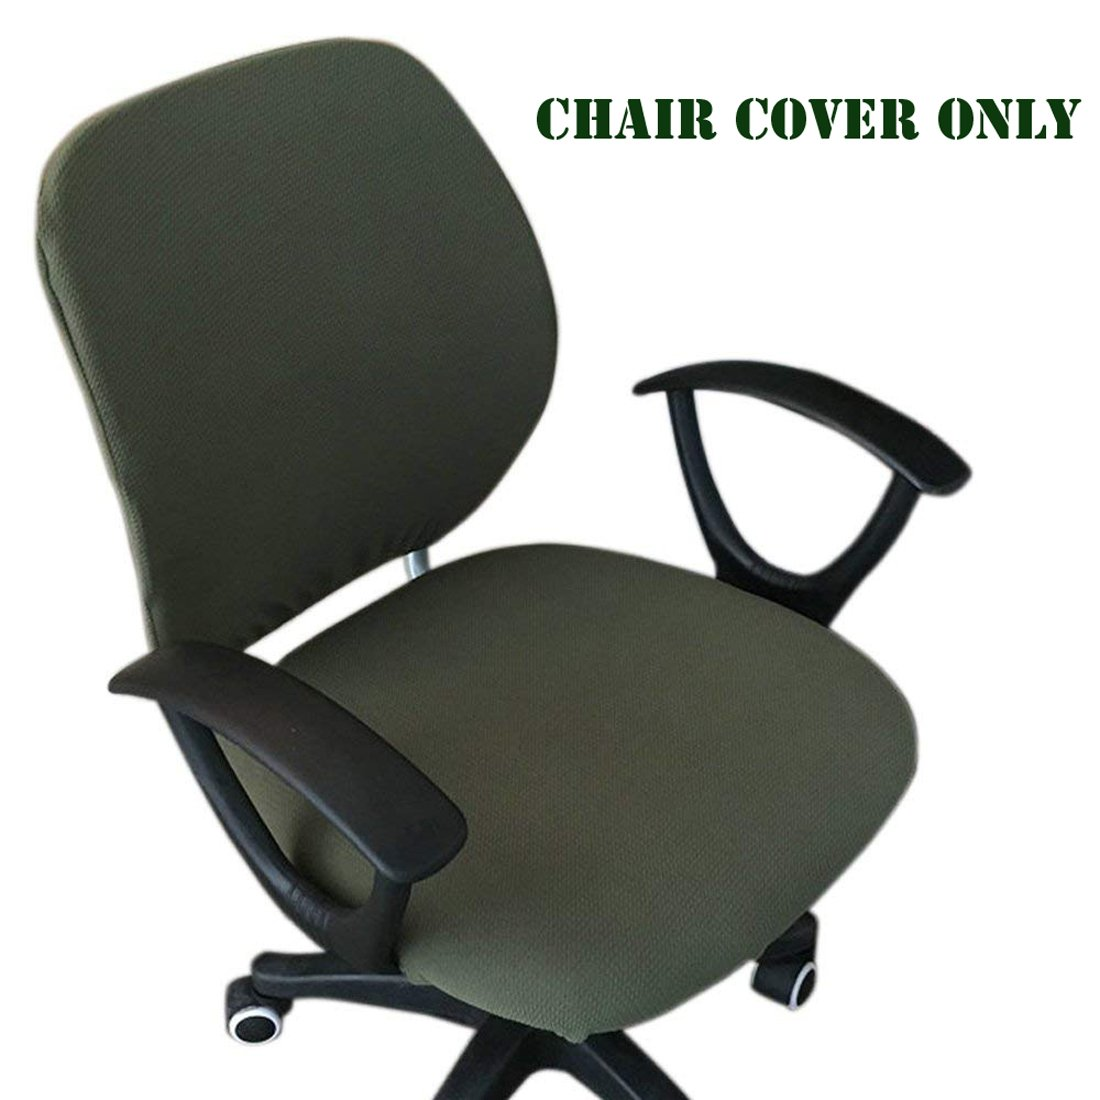 Army Green Frifer Office Chair Cover Removable Resilient Chair Covers Separate Chair Cover for Office Rotating Chair,Computer Chair,Swivel Chair Armrest Chair